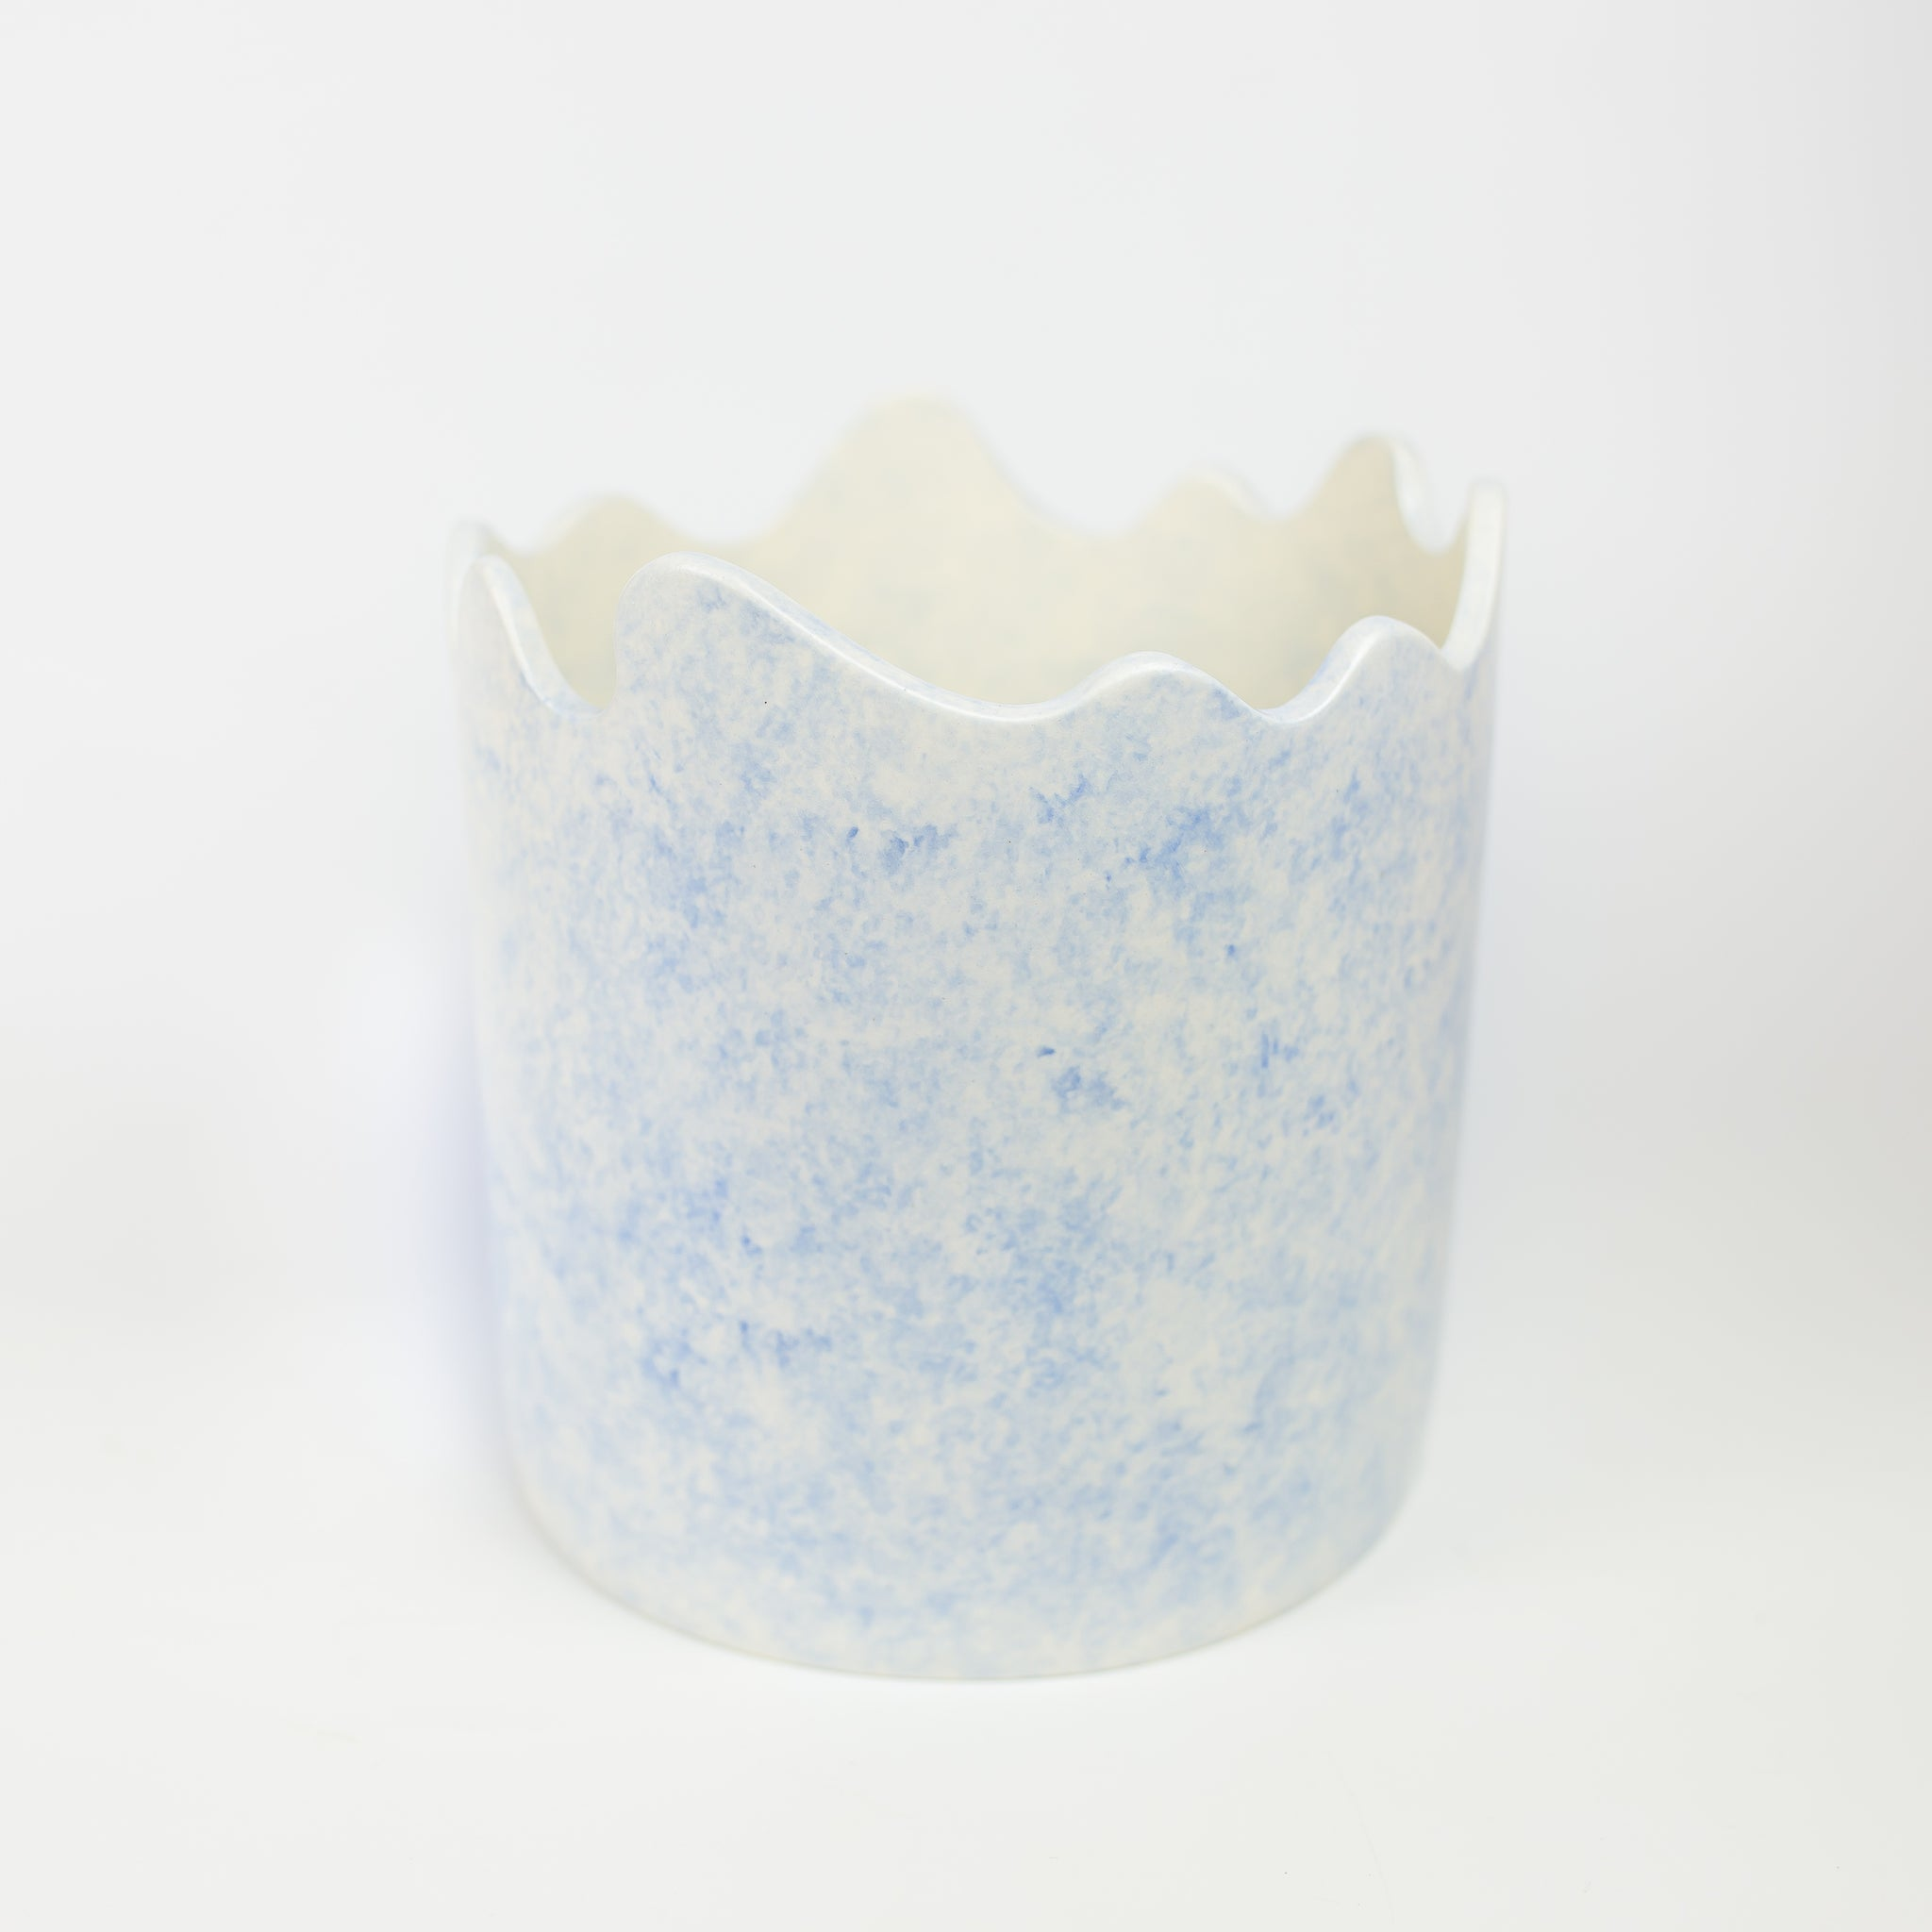 Ümlaut Ceramics - Wavy Blue Planter (Large) *Local Pickup Only*